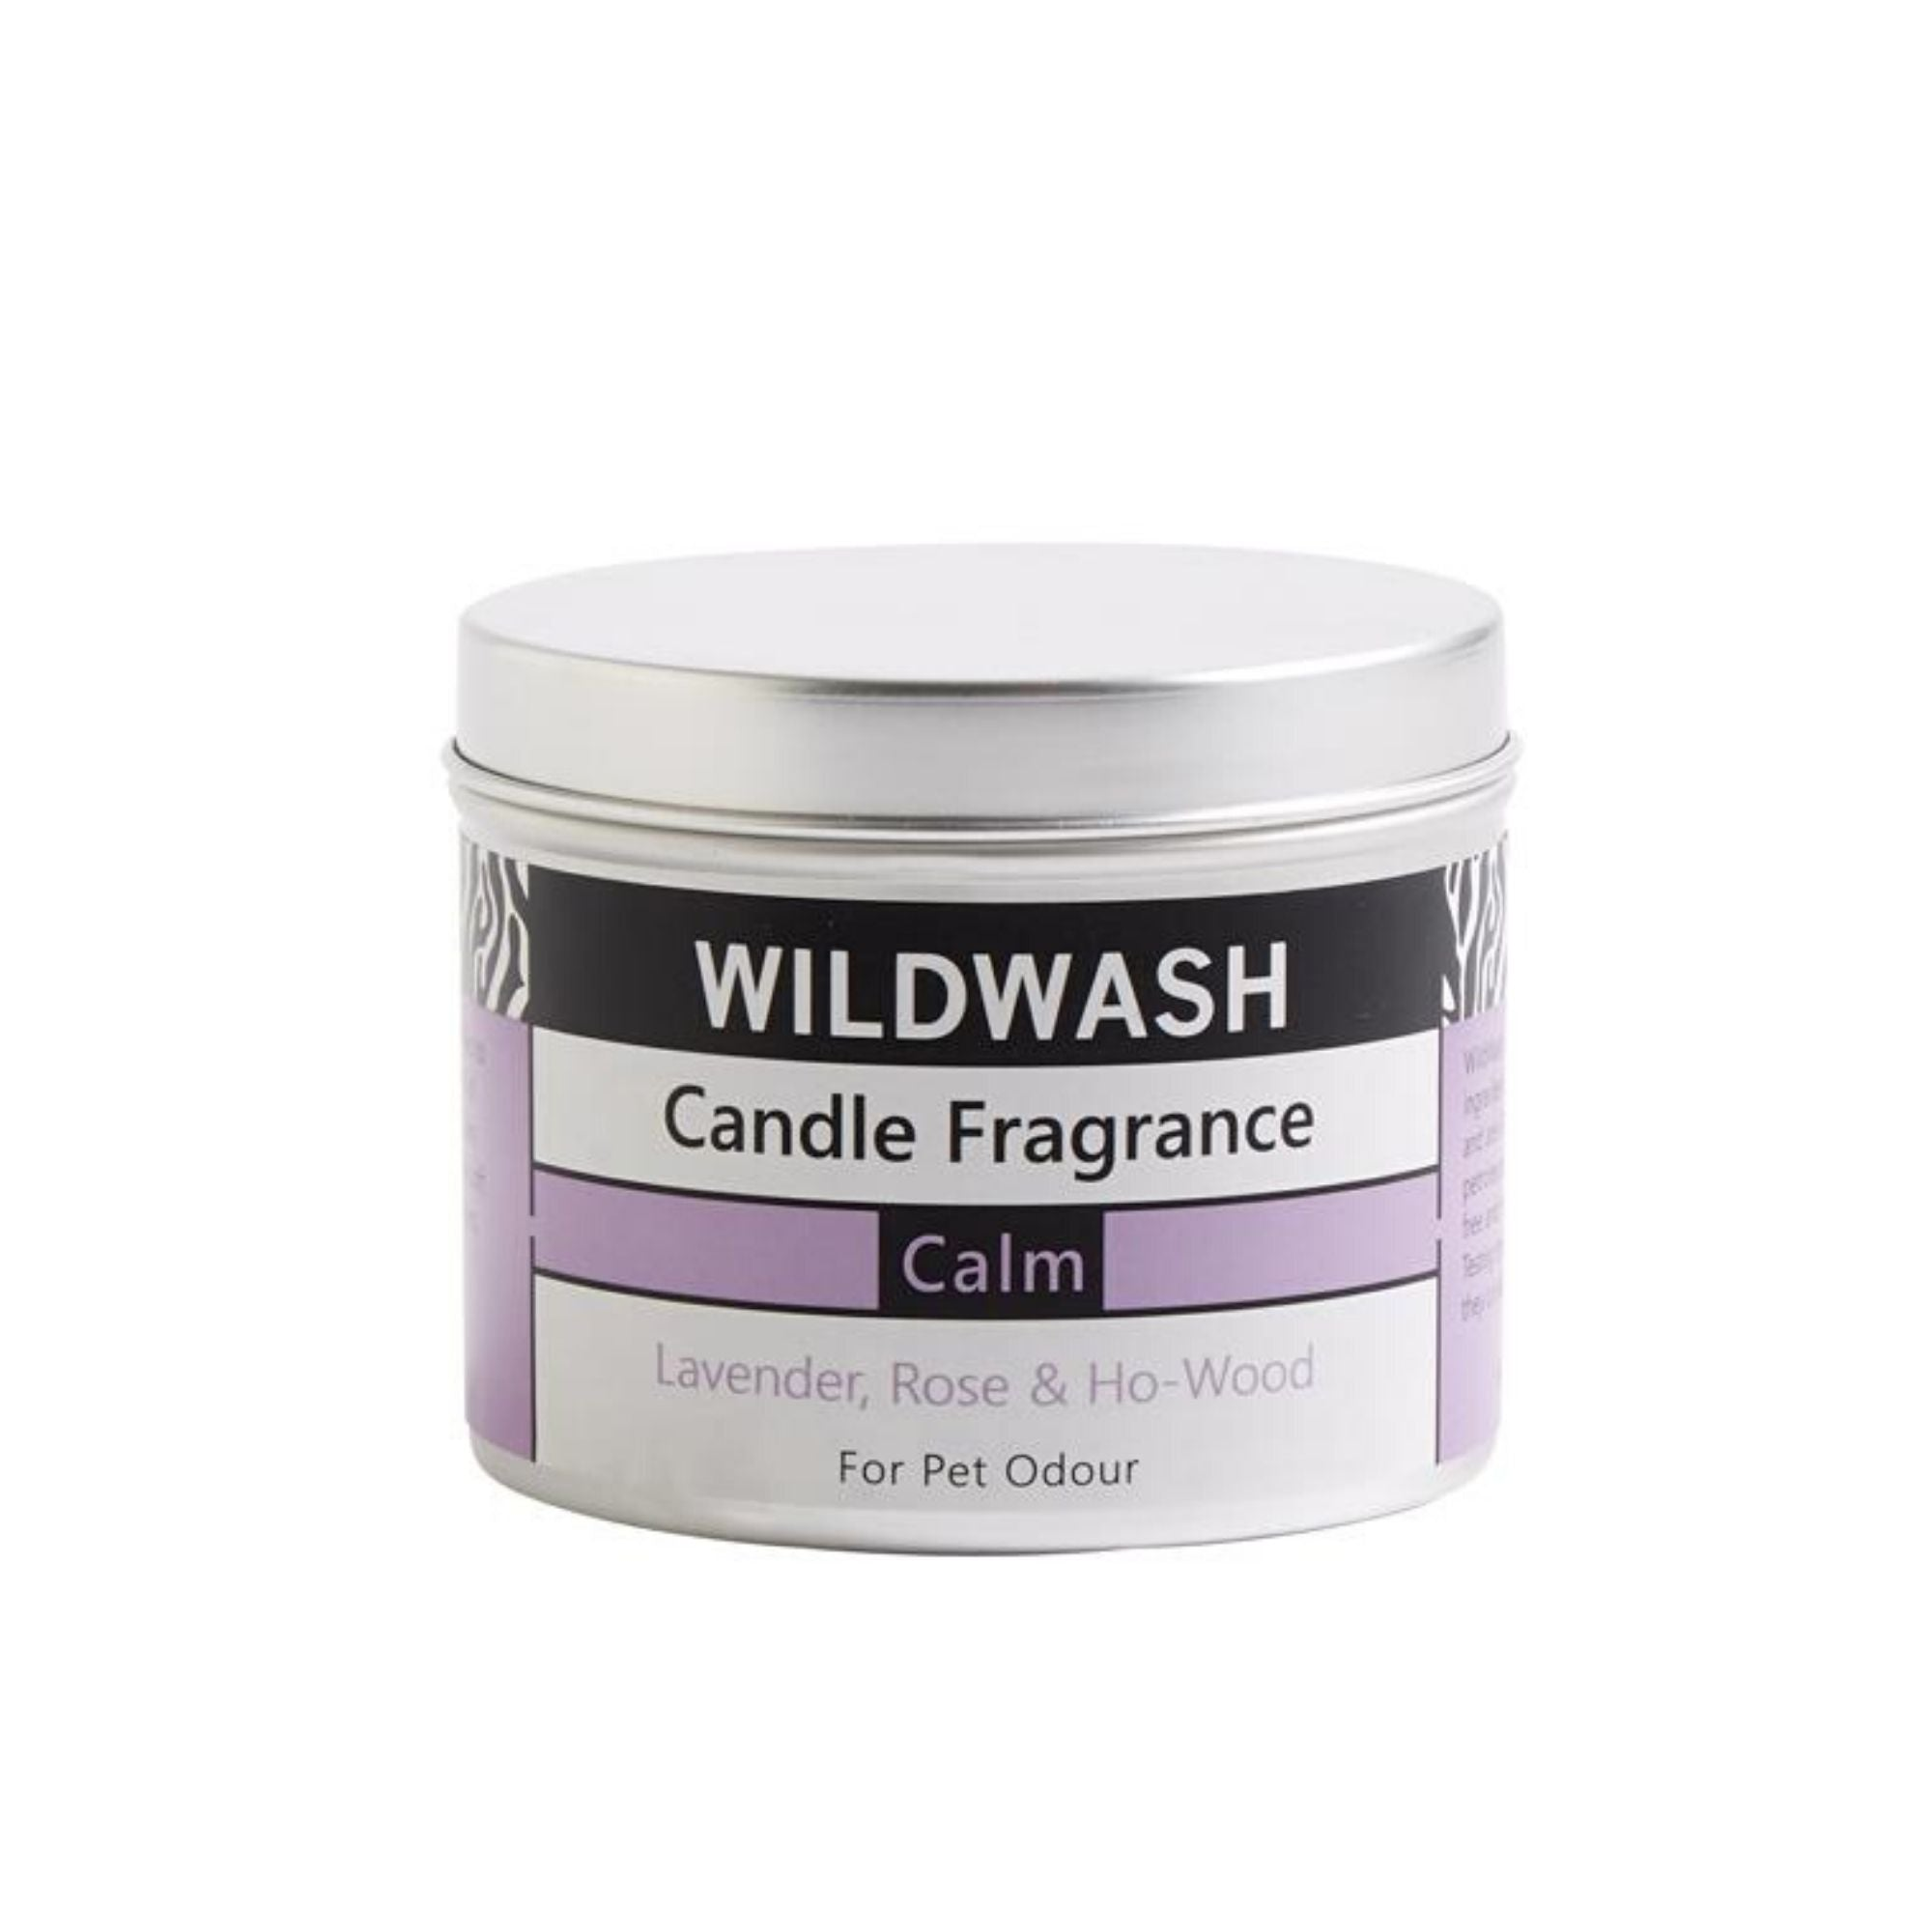 Wildwash Tinned Candle Calm, Vegan, Pet Friendly | Barks & Bunnies